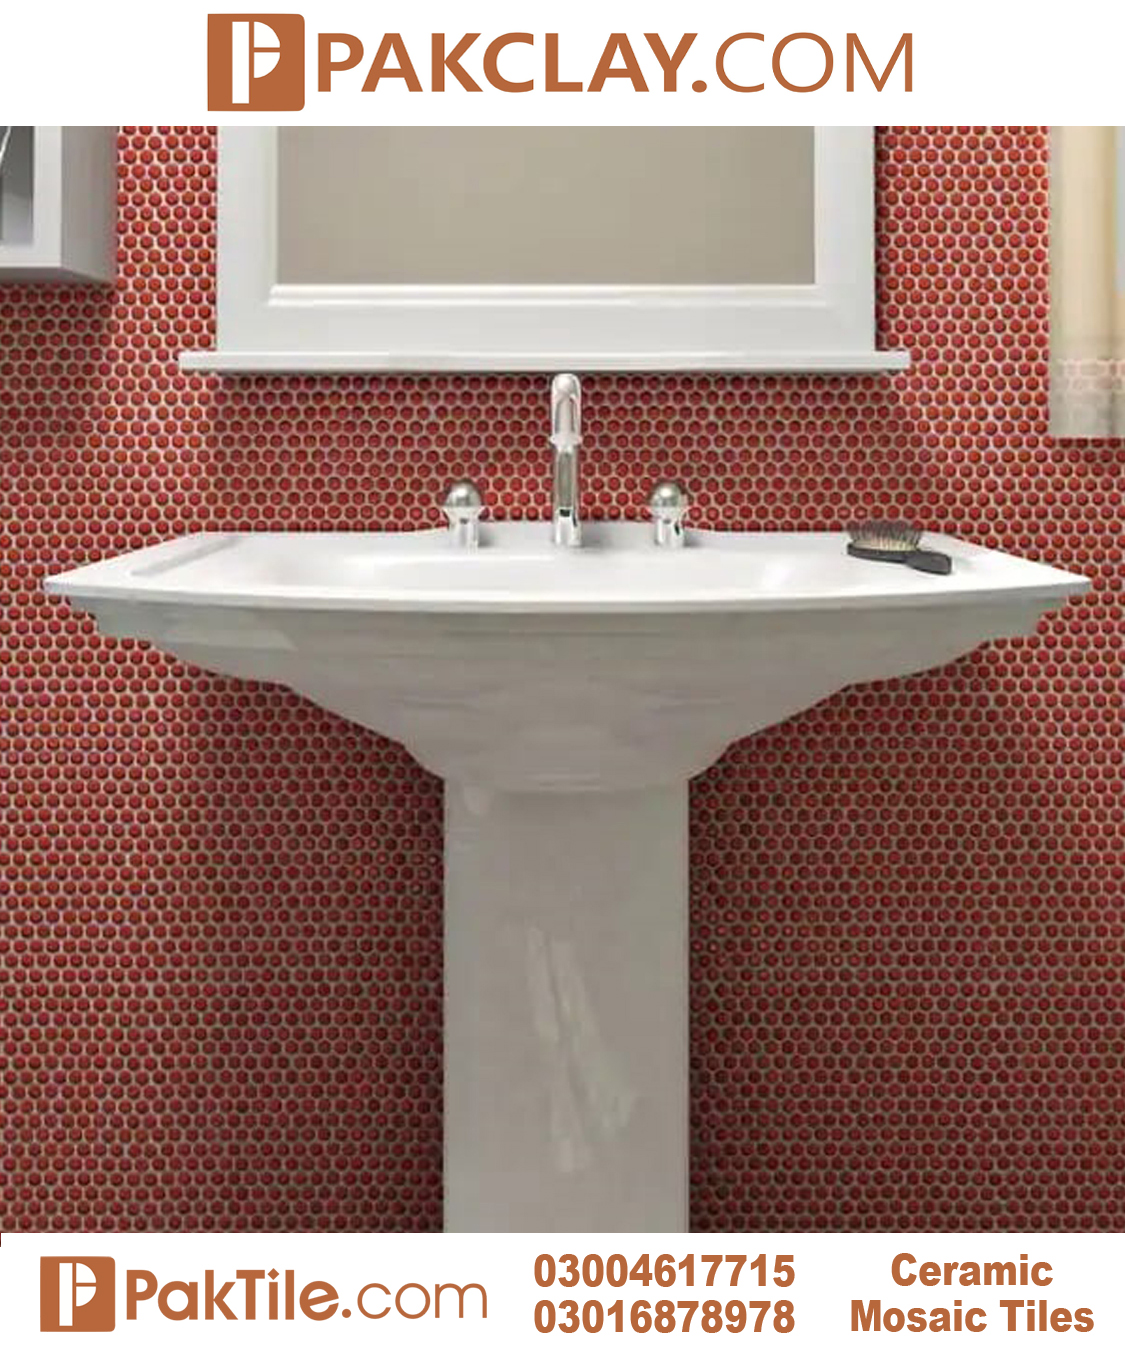 Red Color Ceramic Wall Tiles Design in Pakistan